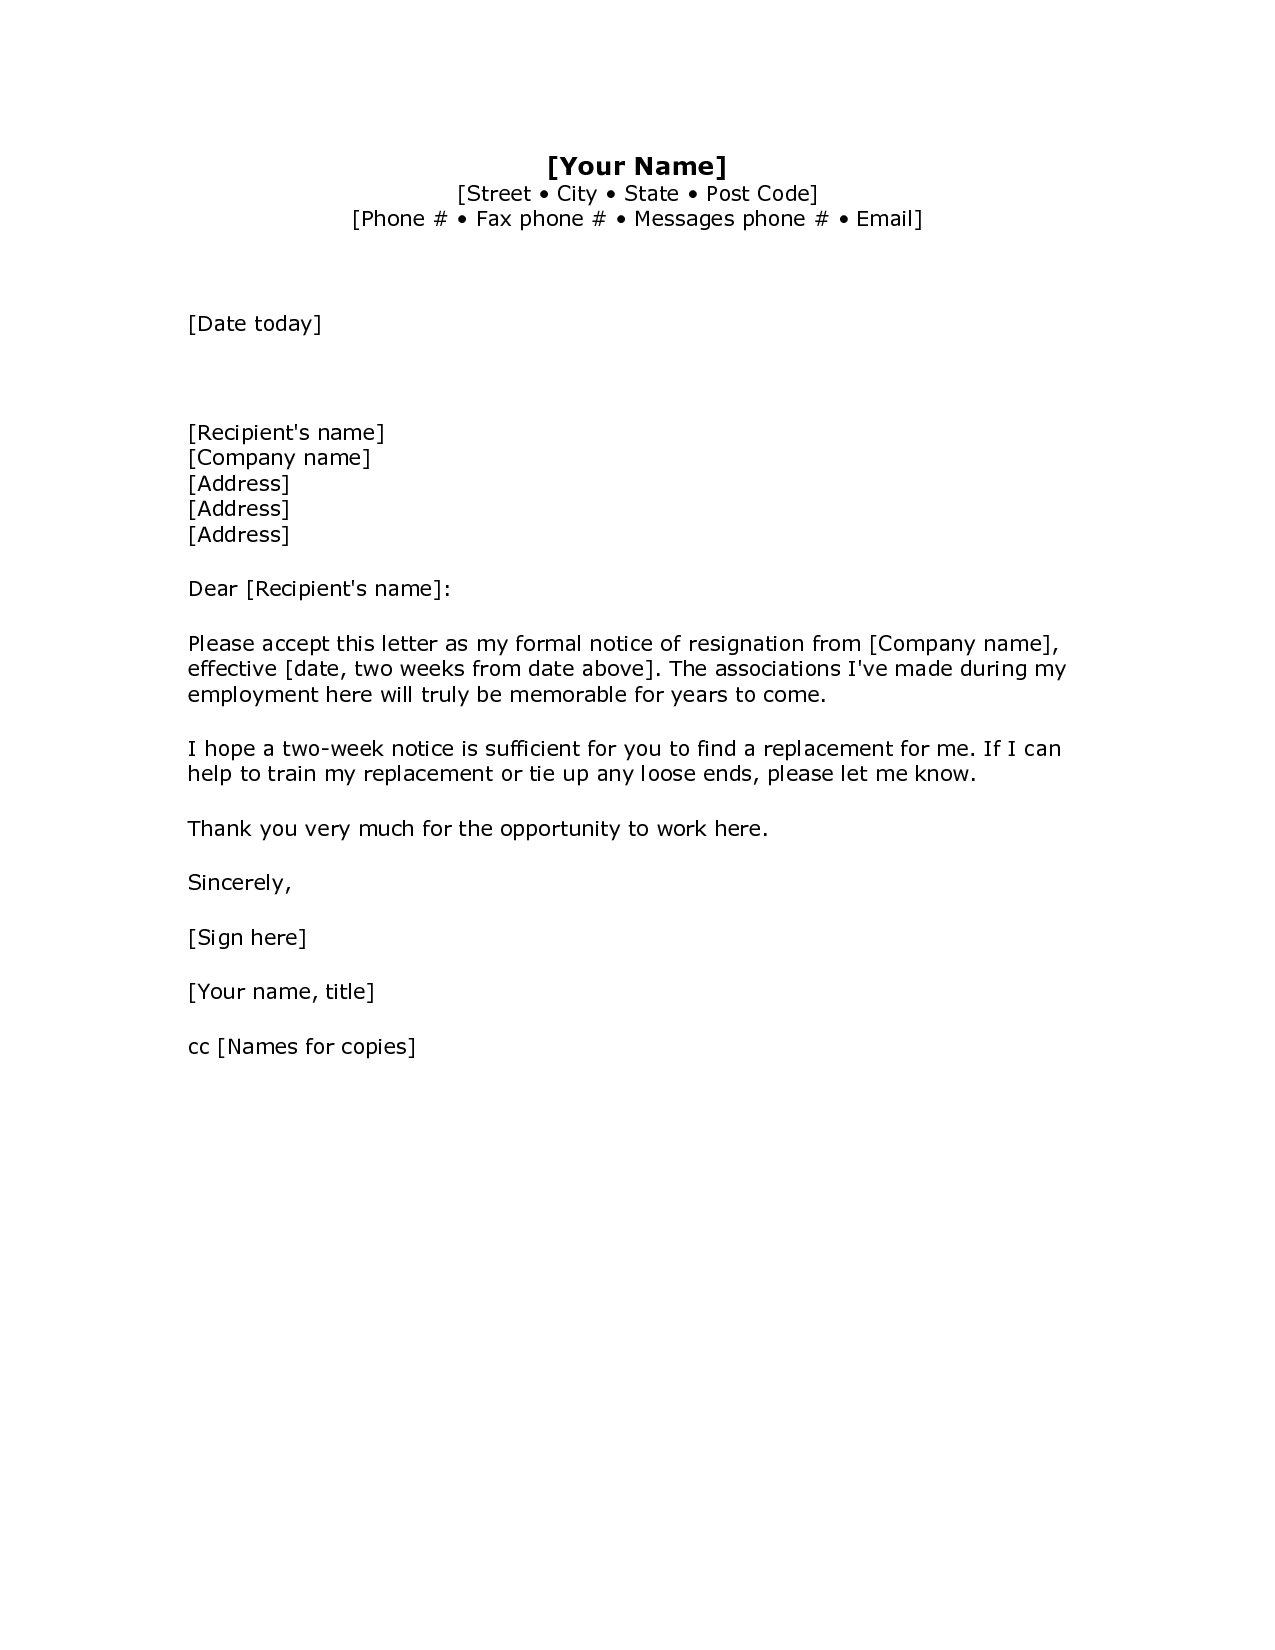 Final Notice before Legal Action Letter Template Uk - 2 Weeks Notice Letter Resignation Letter Week Notice Words Hdwriting